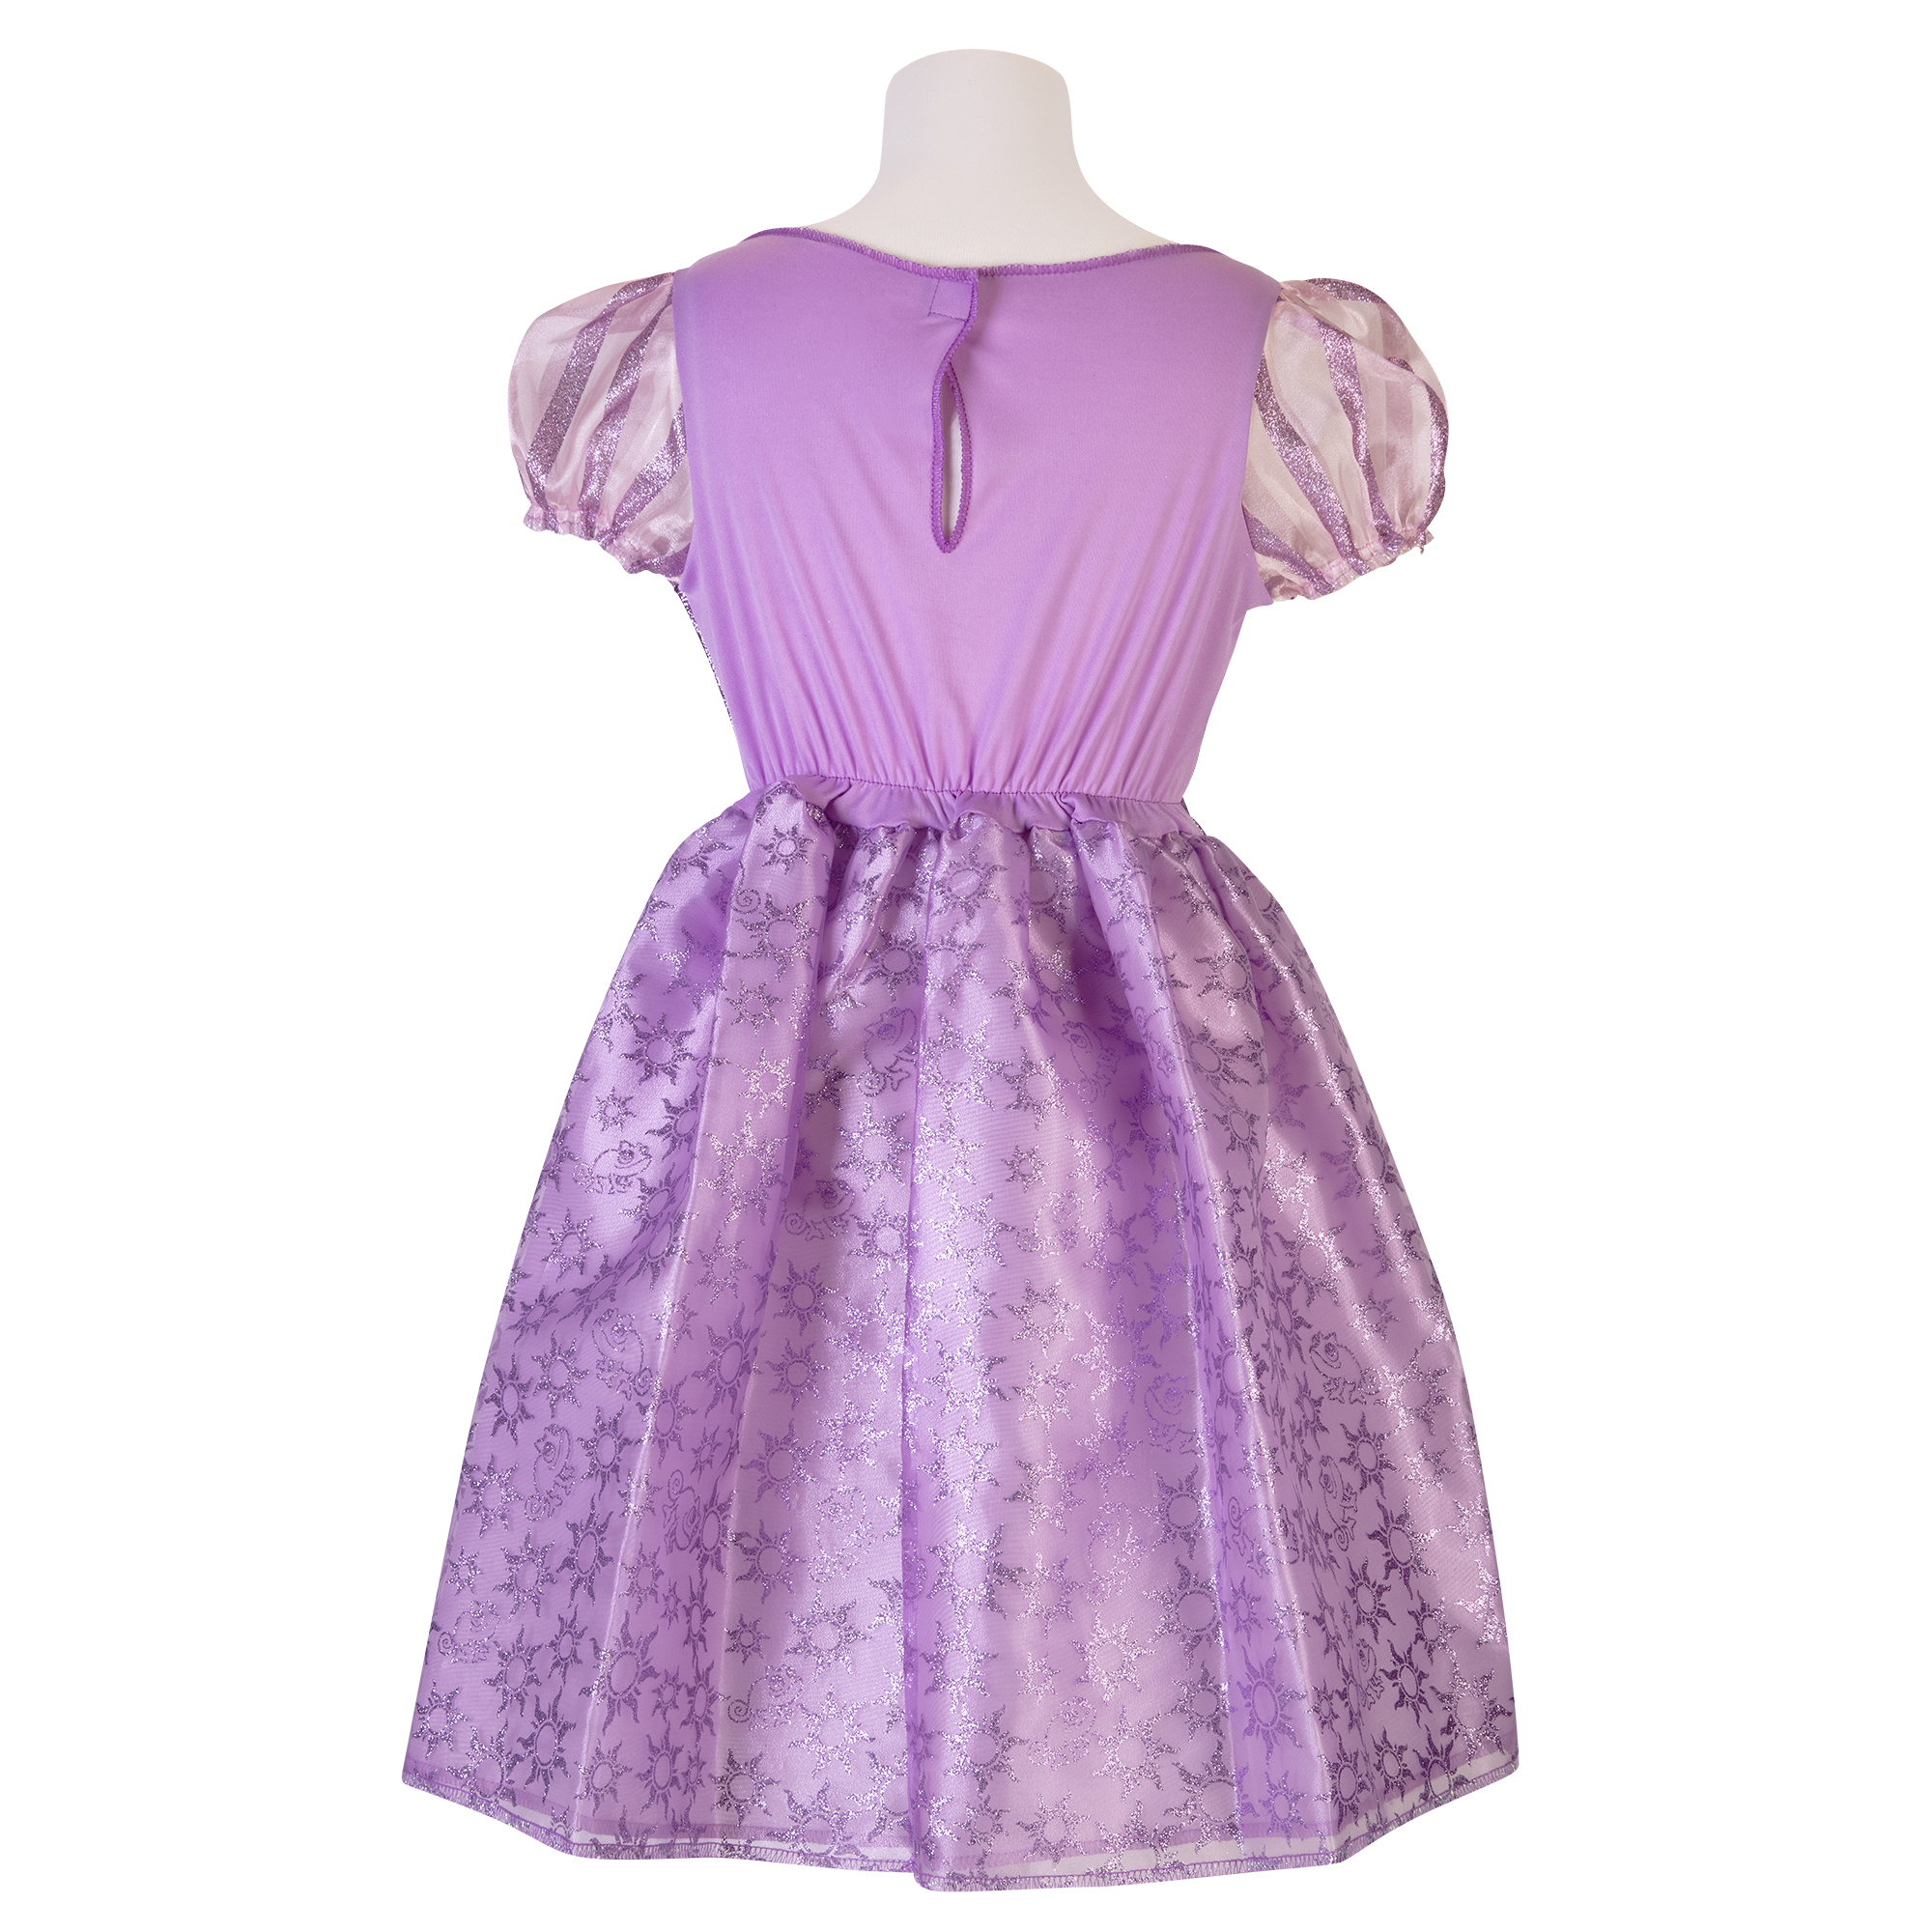 Disney Princess Rapunzel Dress